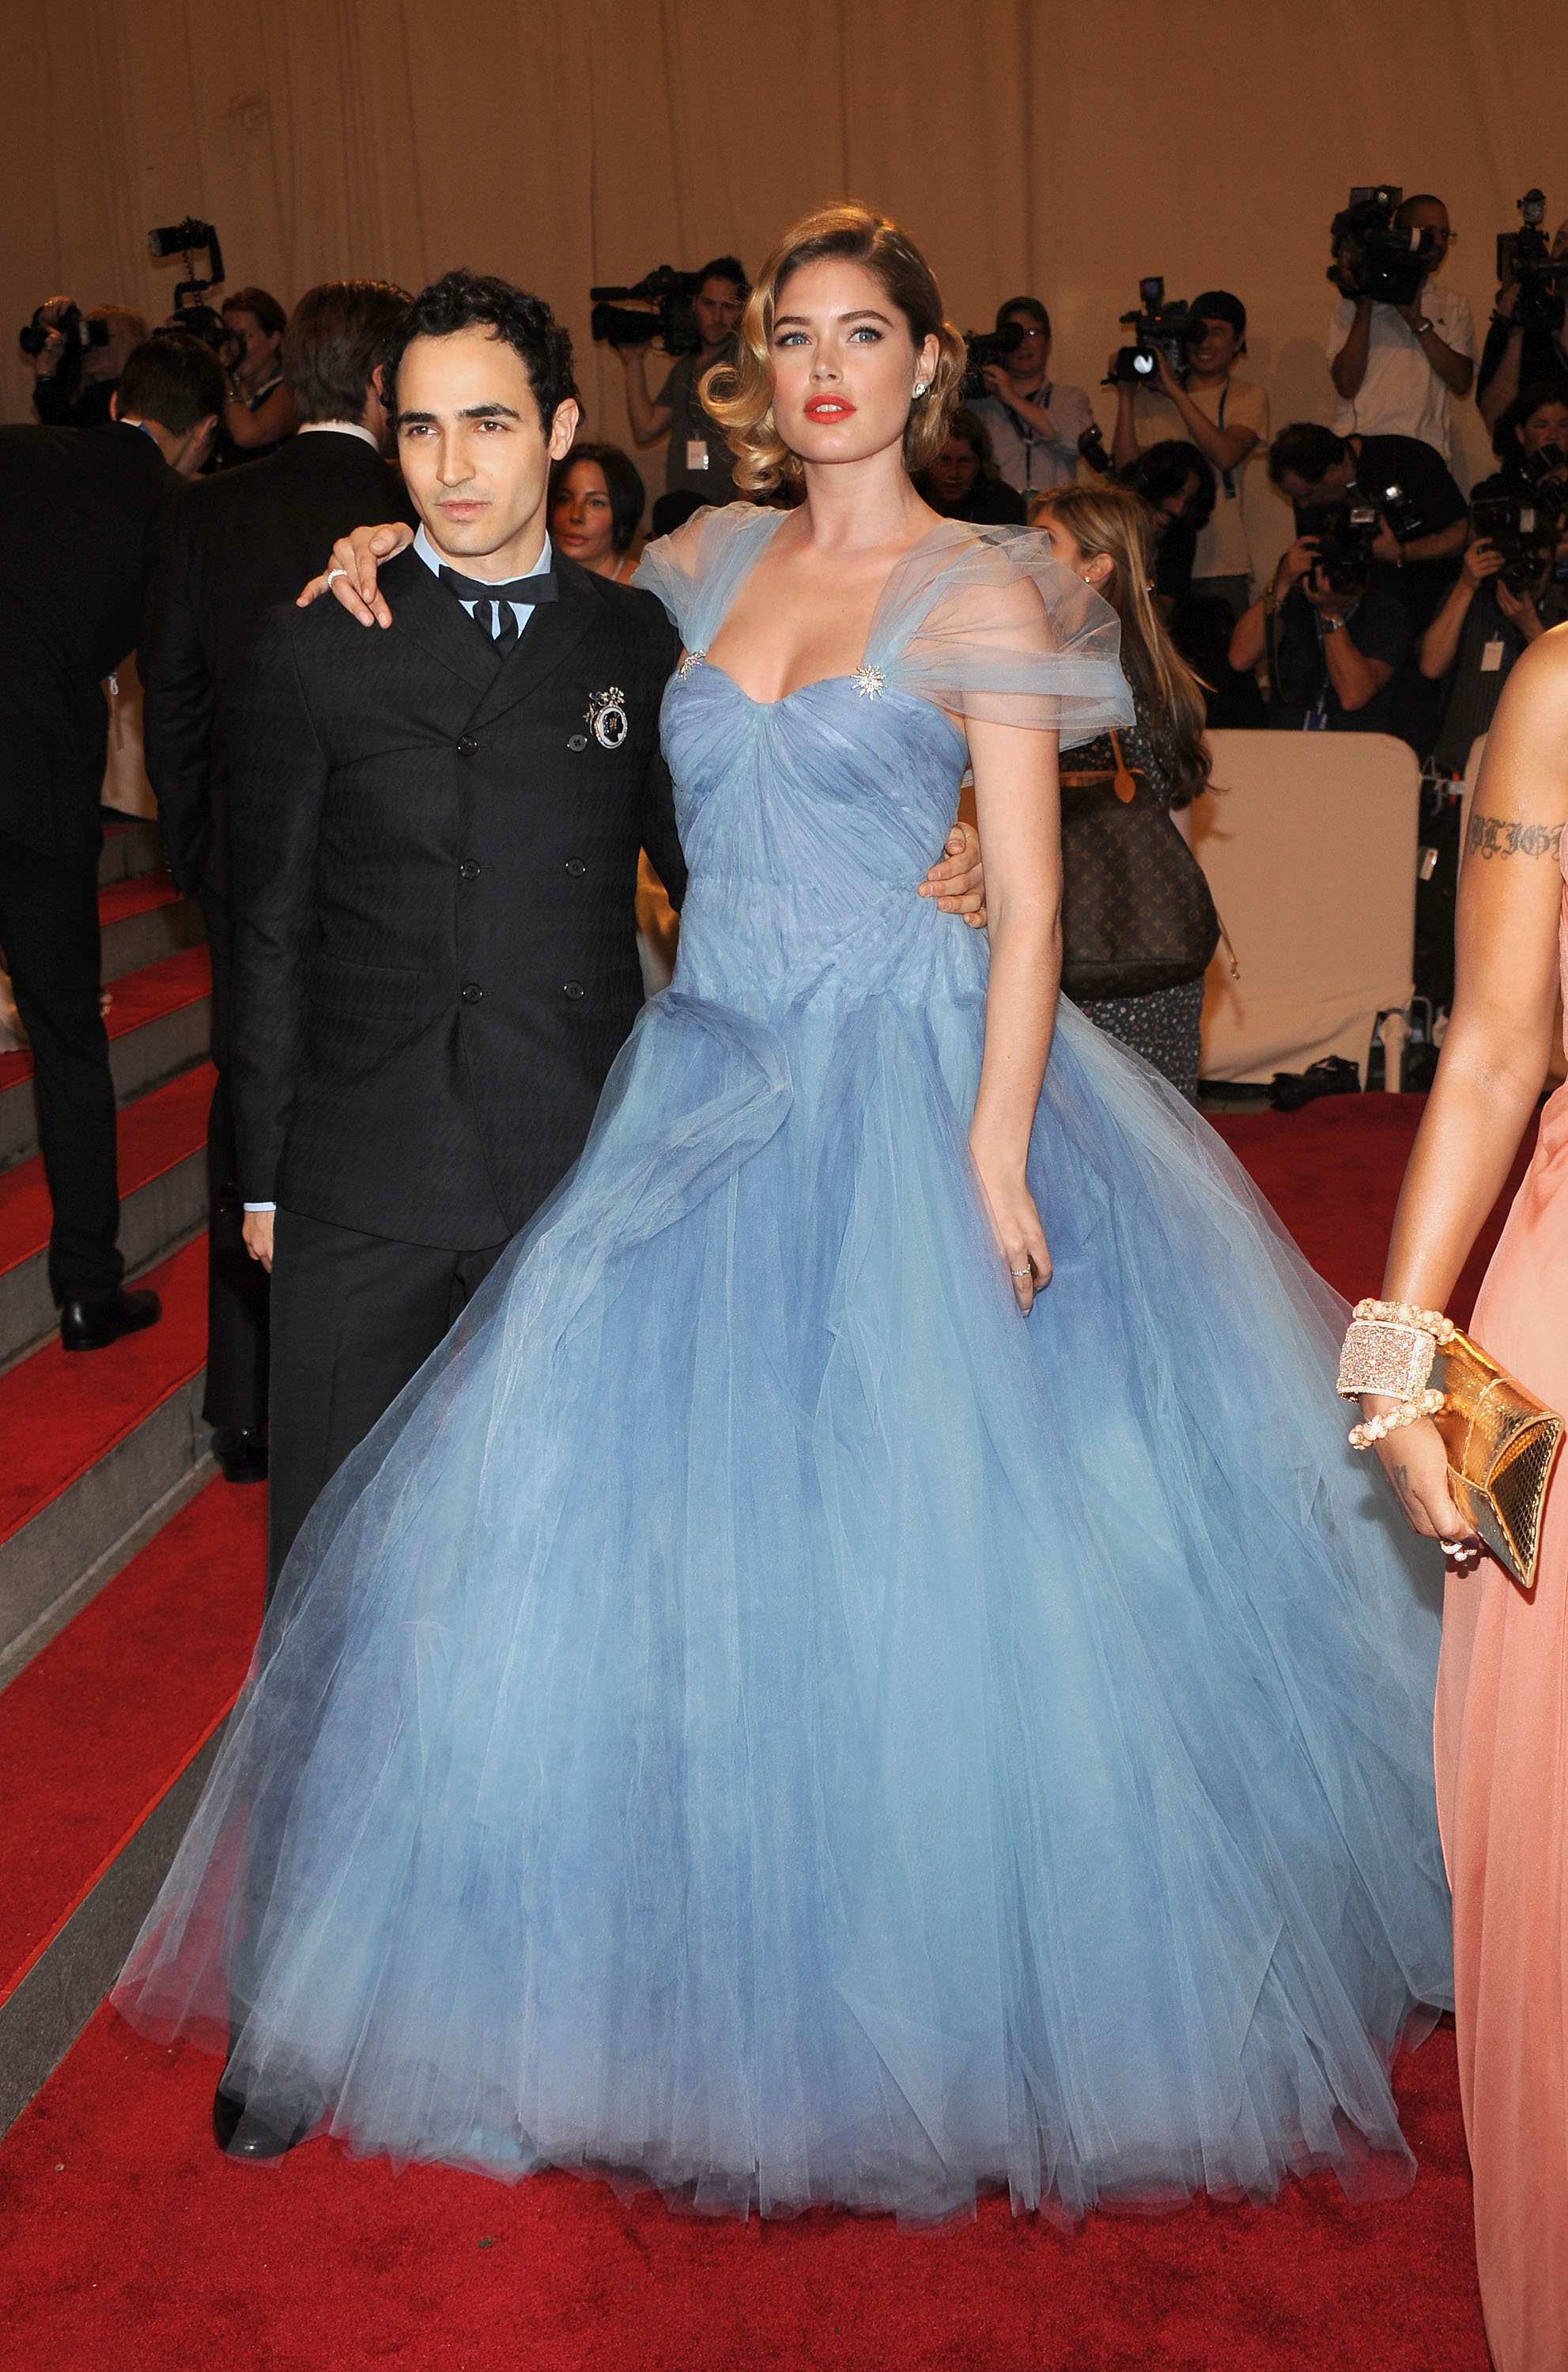 The 50 Greatest Met Gala Dresses Of All Time, From Classic Gowns To ...